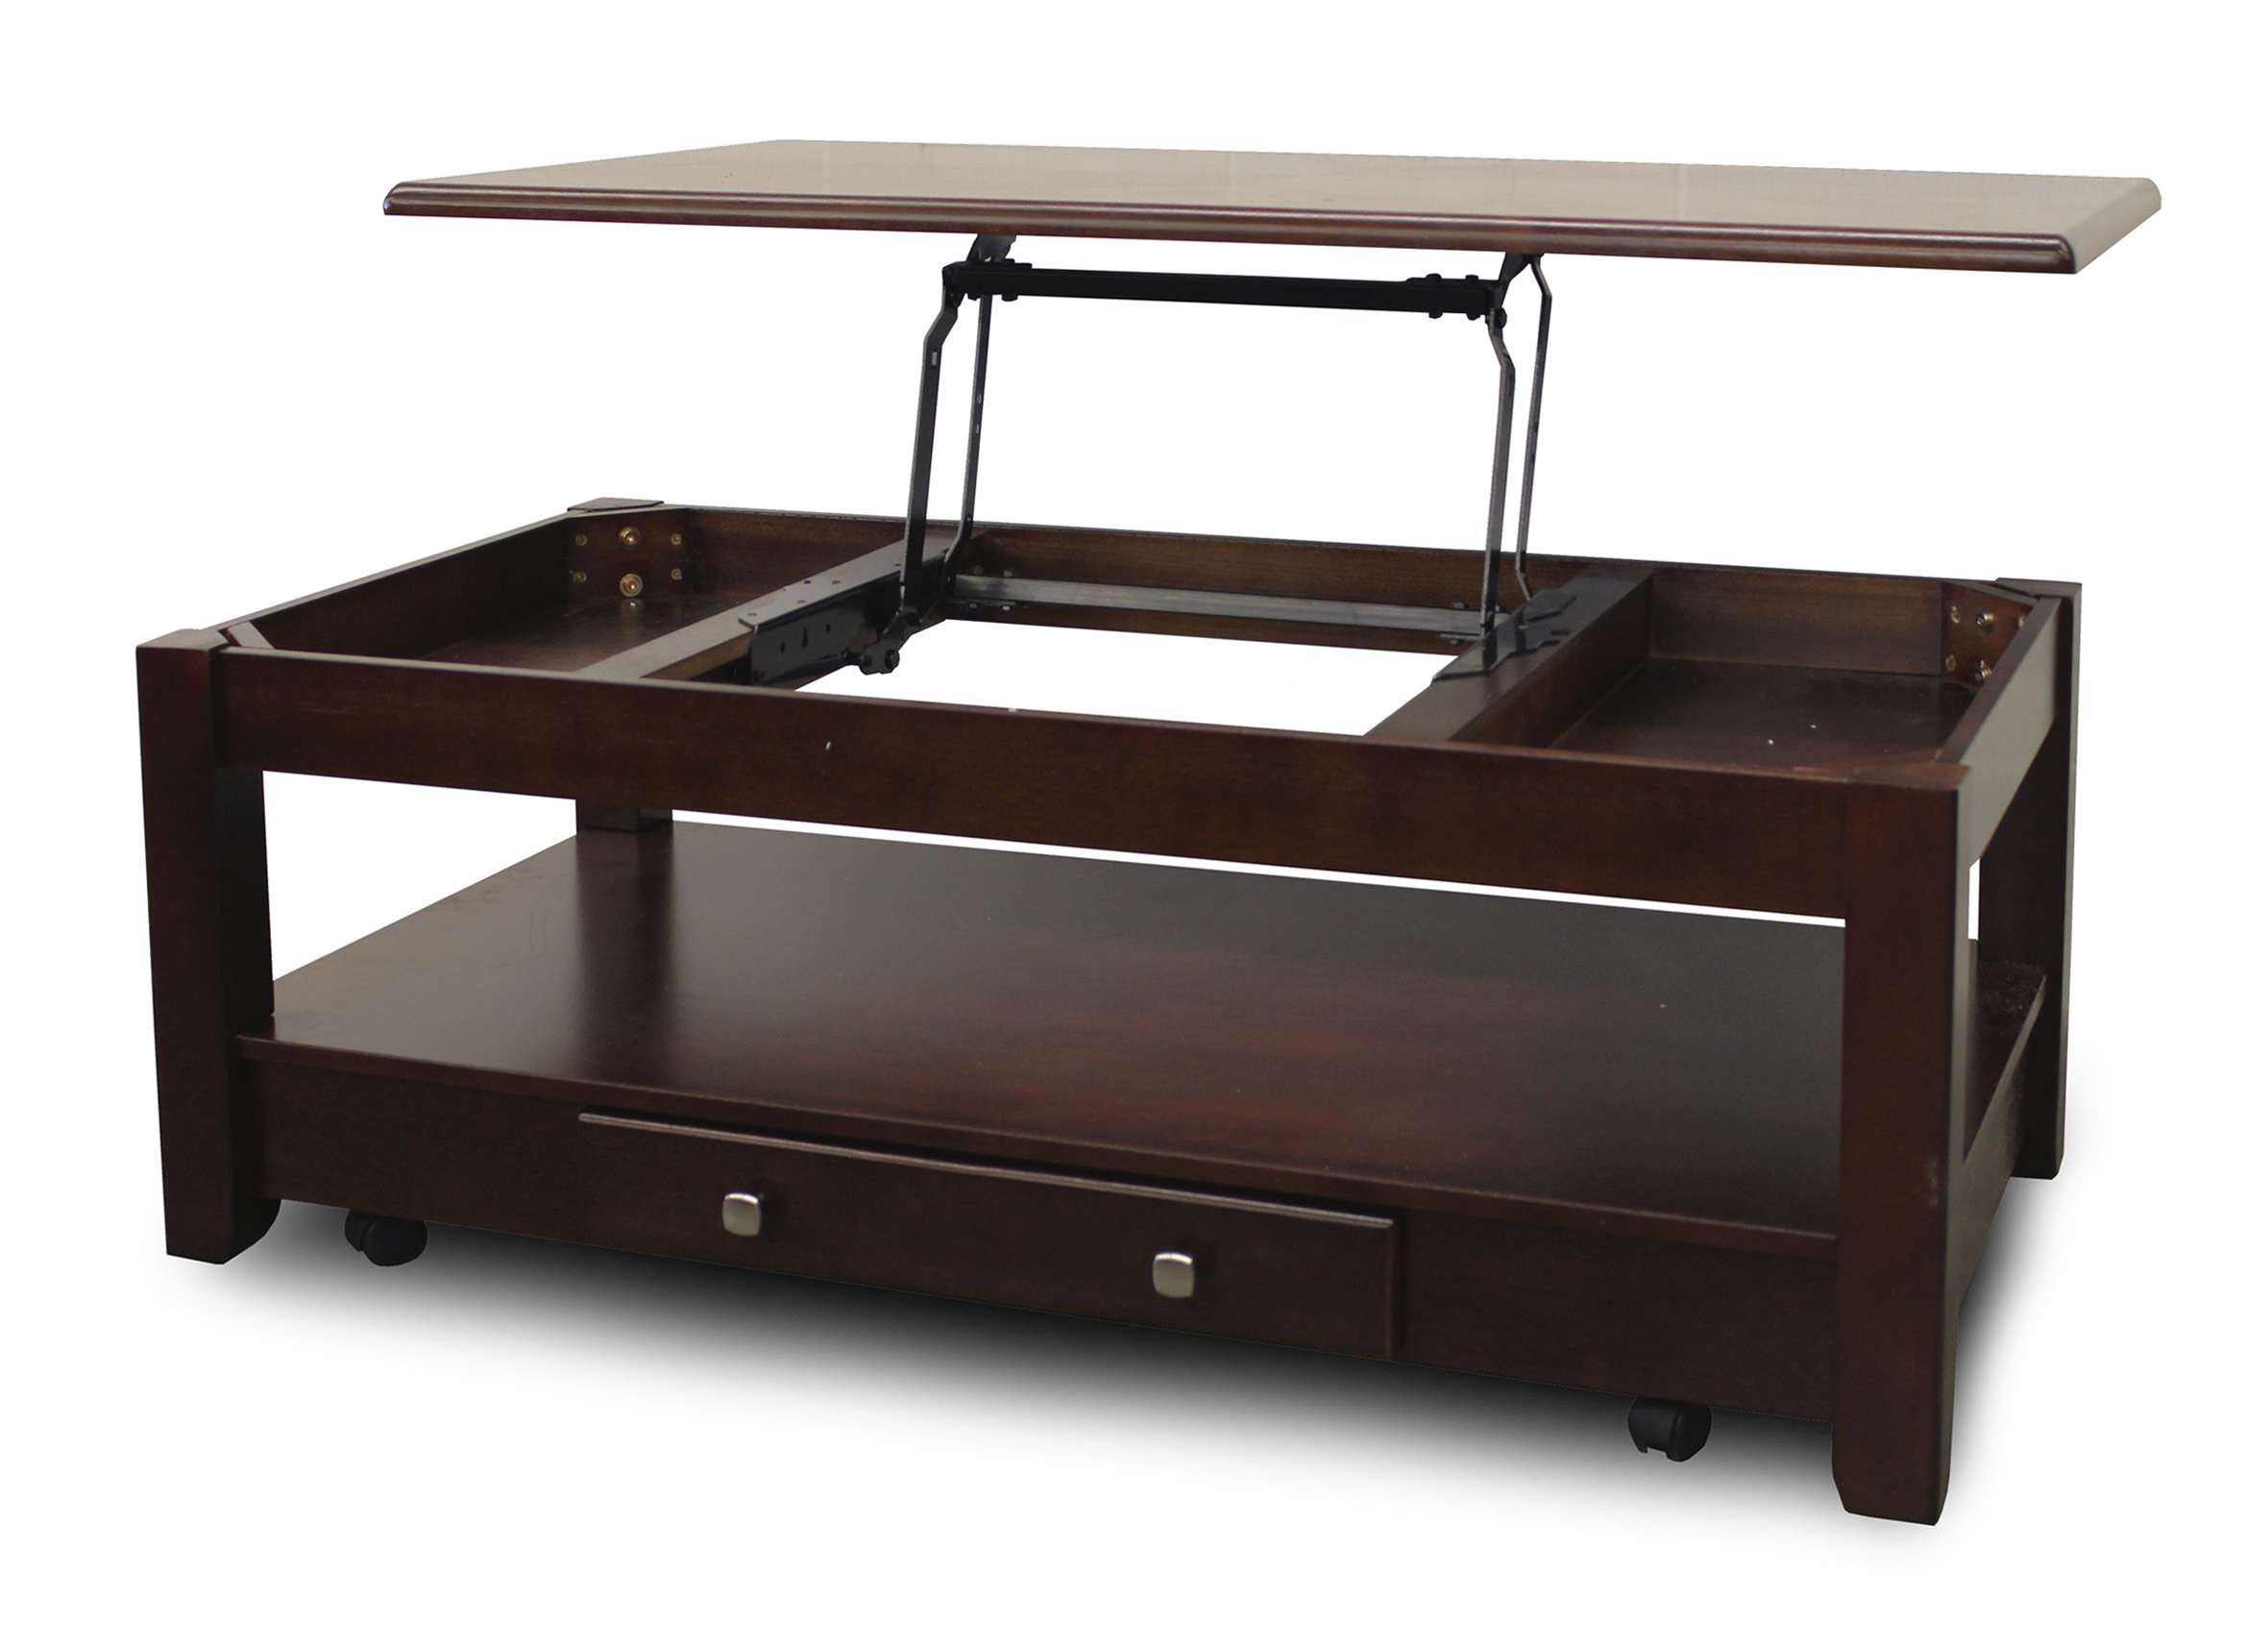 2018 Cheap Lift Top Coffee Tables Regarding Coffee Tables : Fold Out Coffee Table With Lift Top That Raises Up (View 9 of 20)